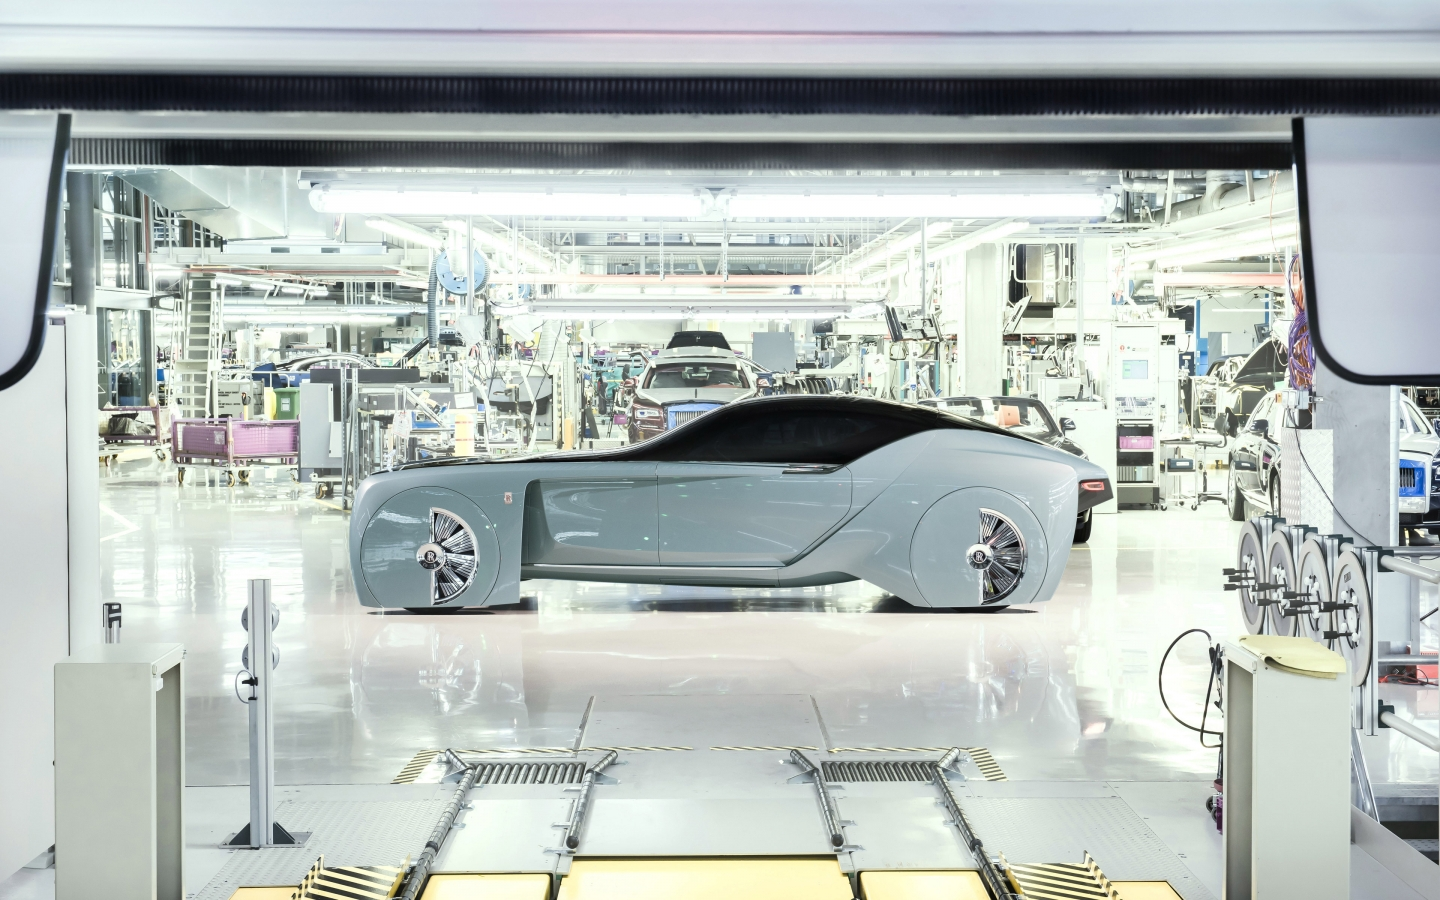 Rolls-Royce Vision Next 100 Concept 2016 - Photo 06 - Taille: 1440x900